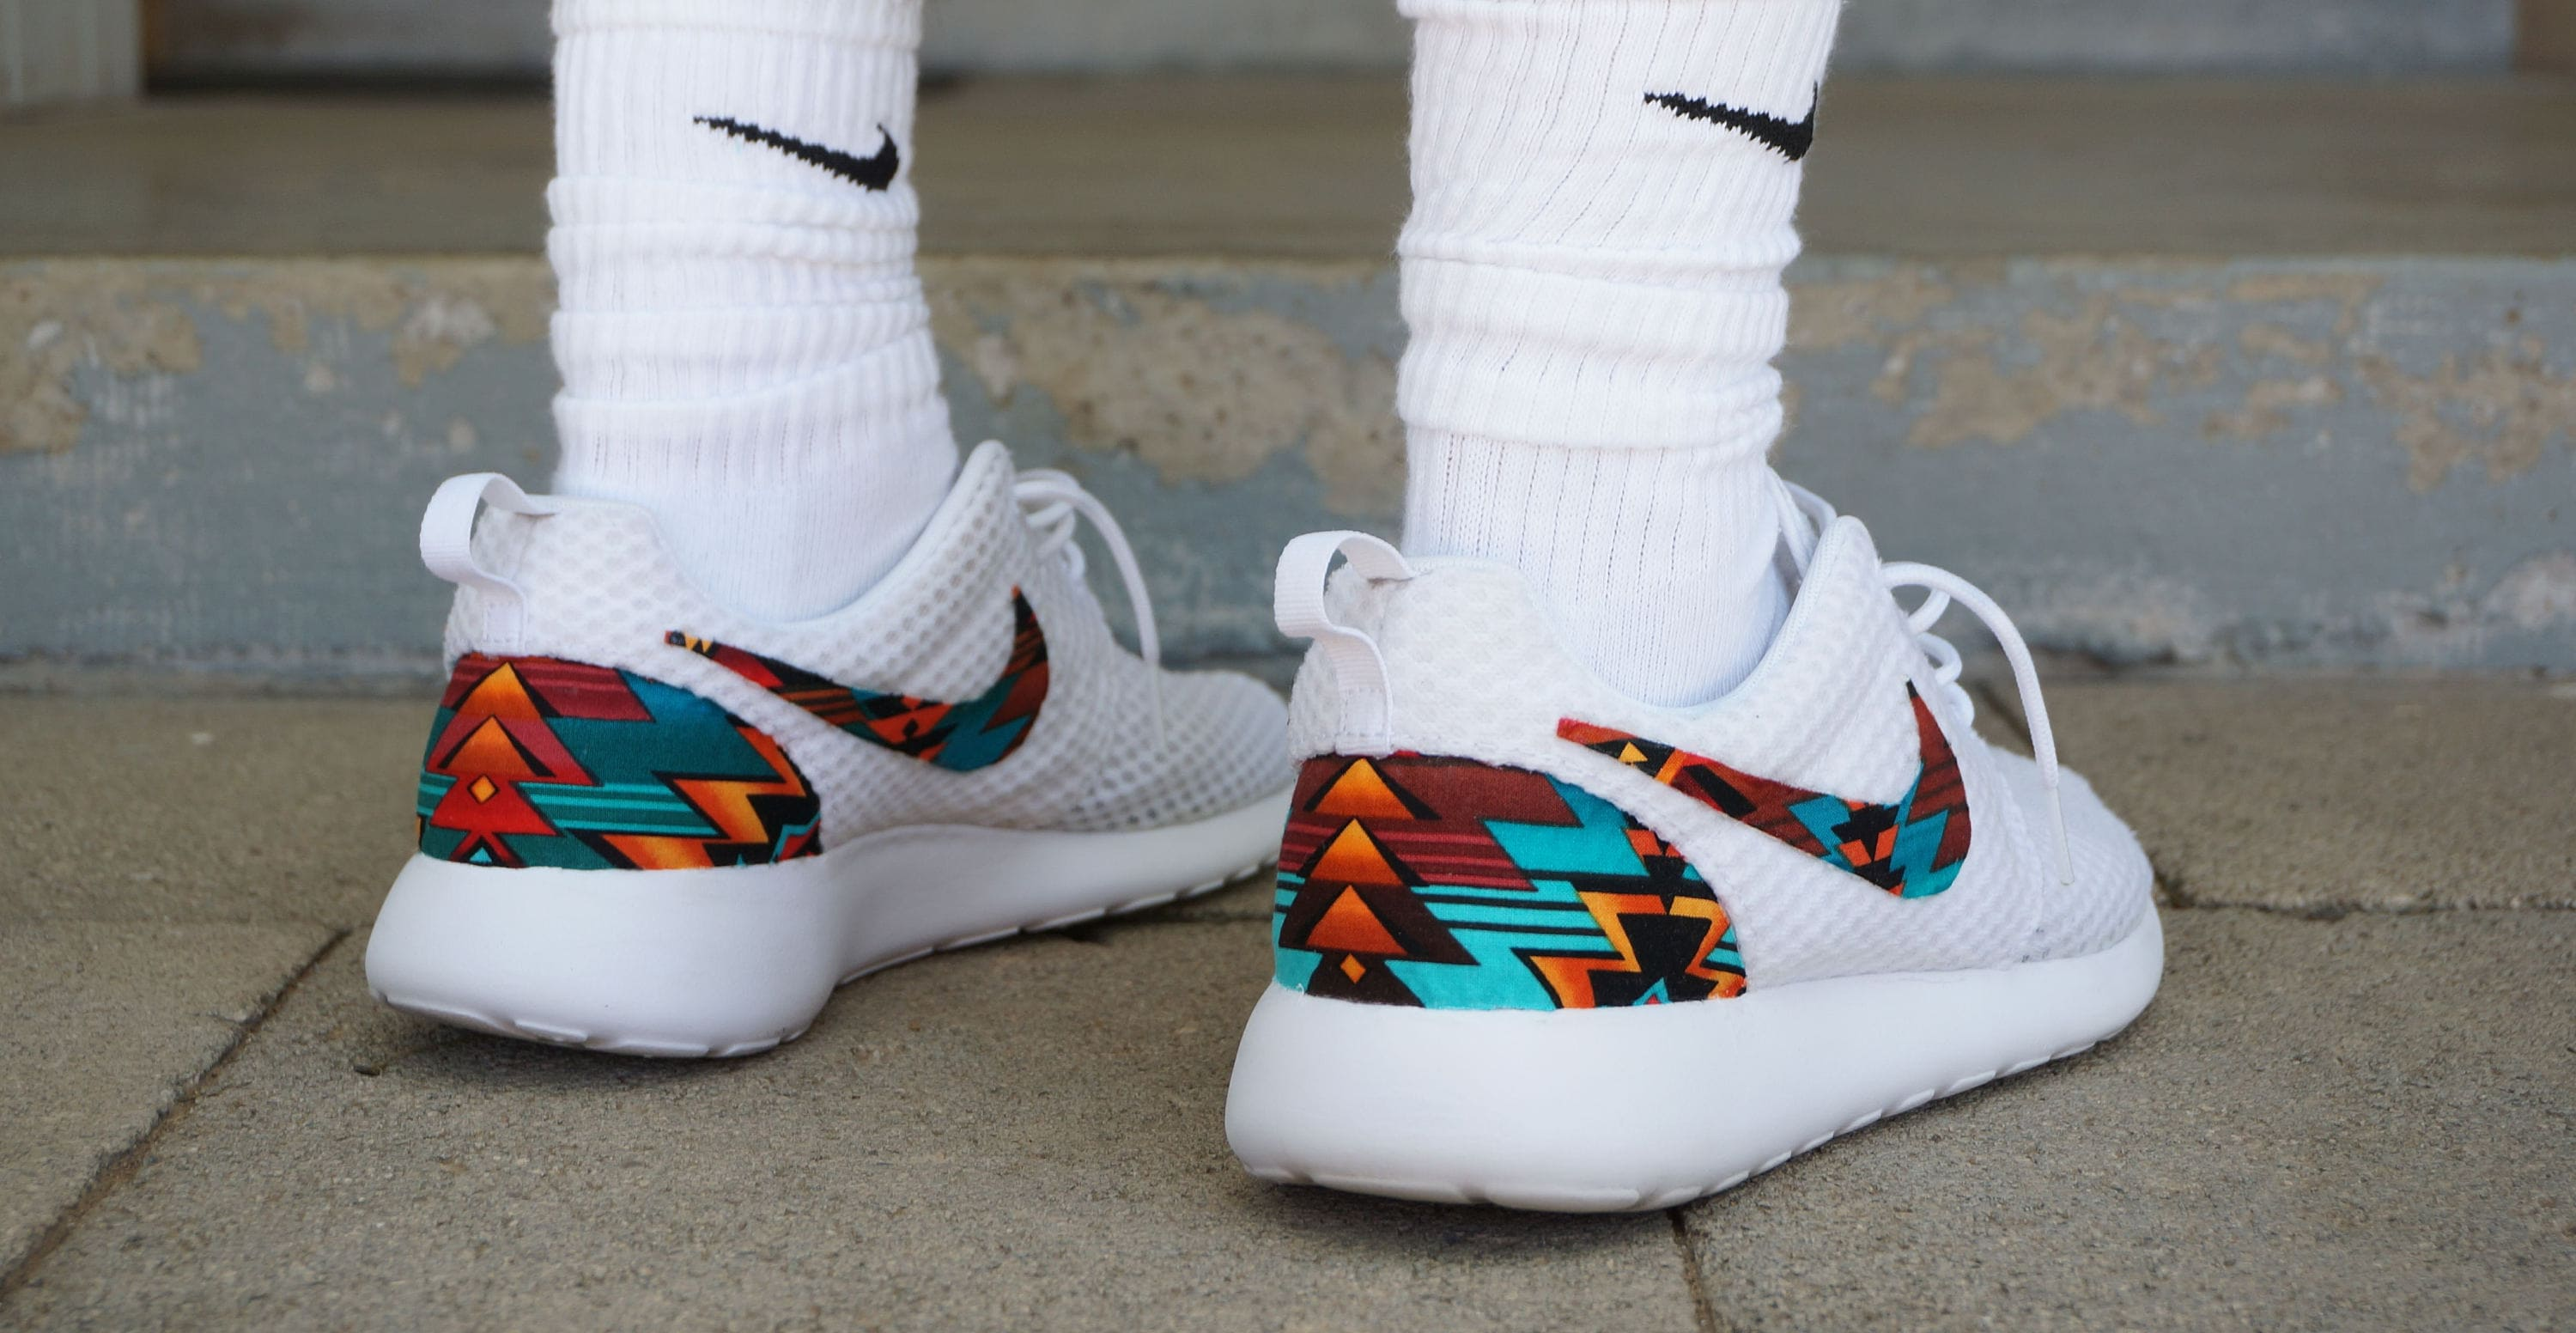 8b51ad685dad New Nike Roshe Run Custom Turquoise Orange Black White